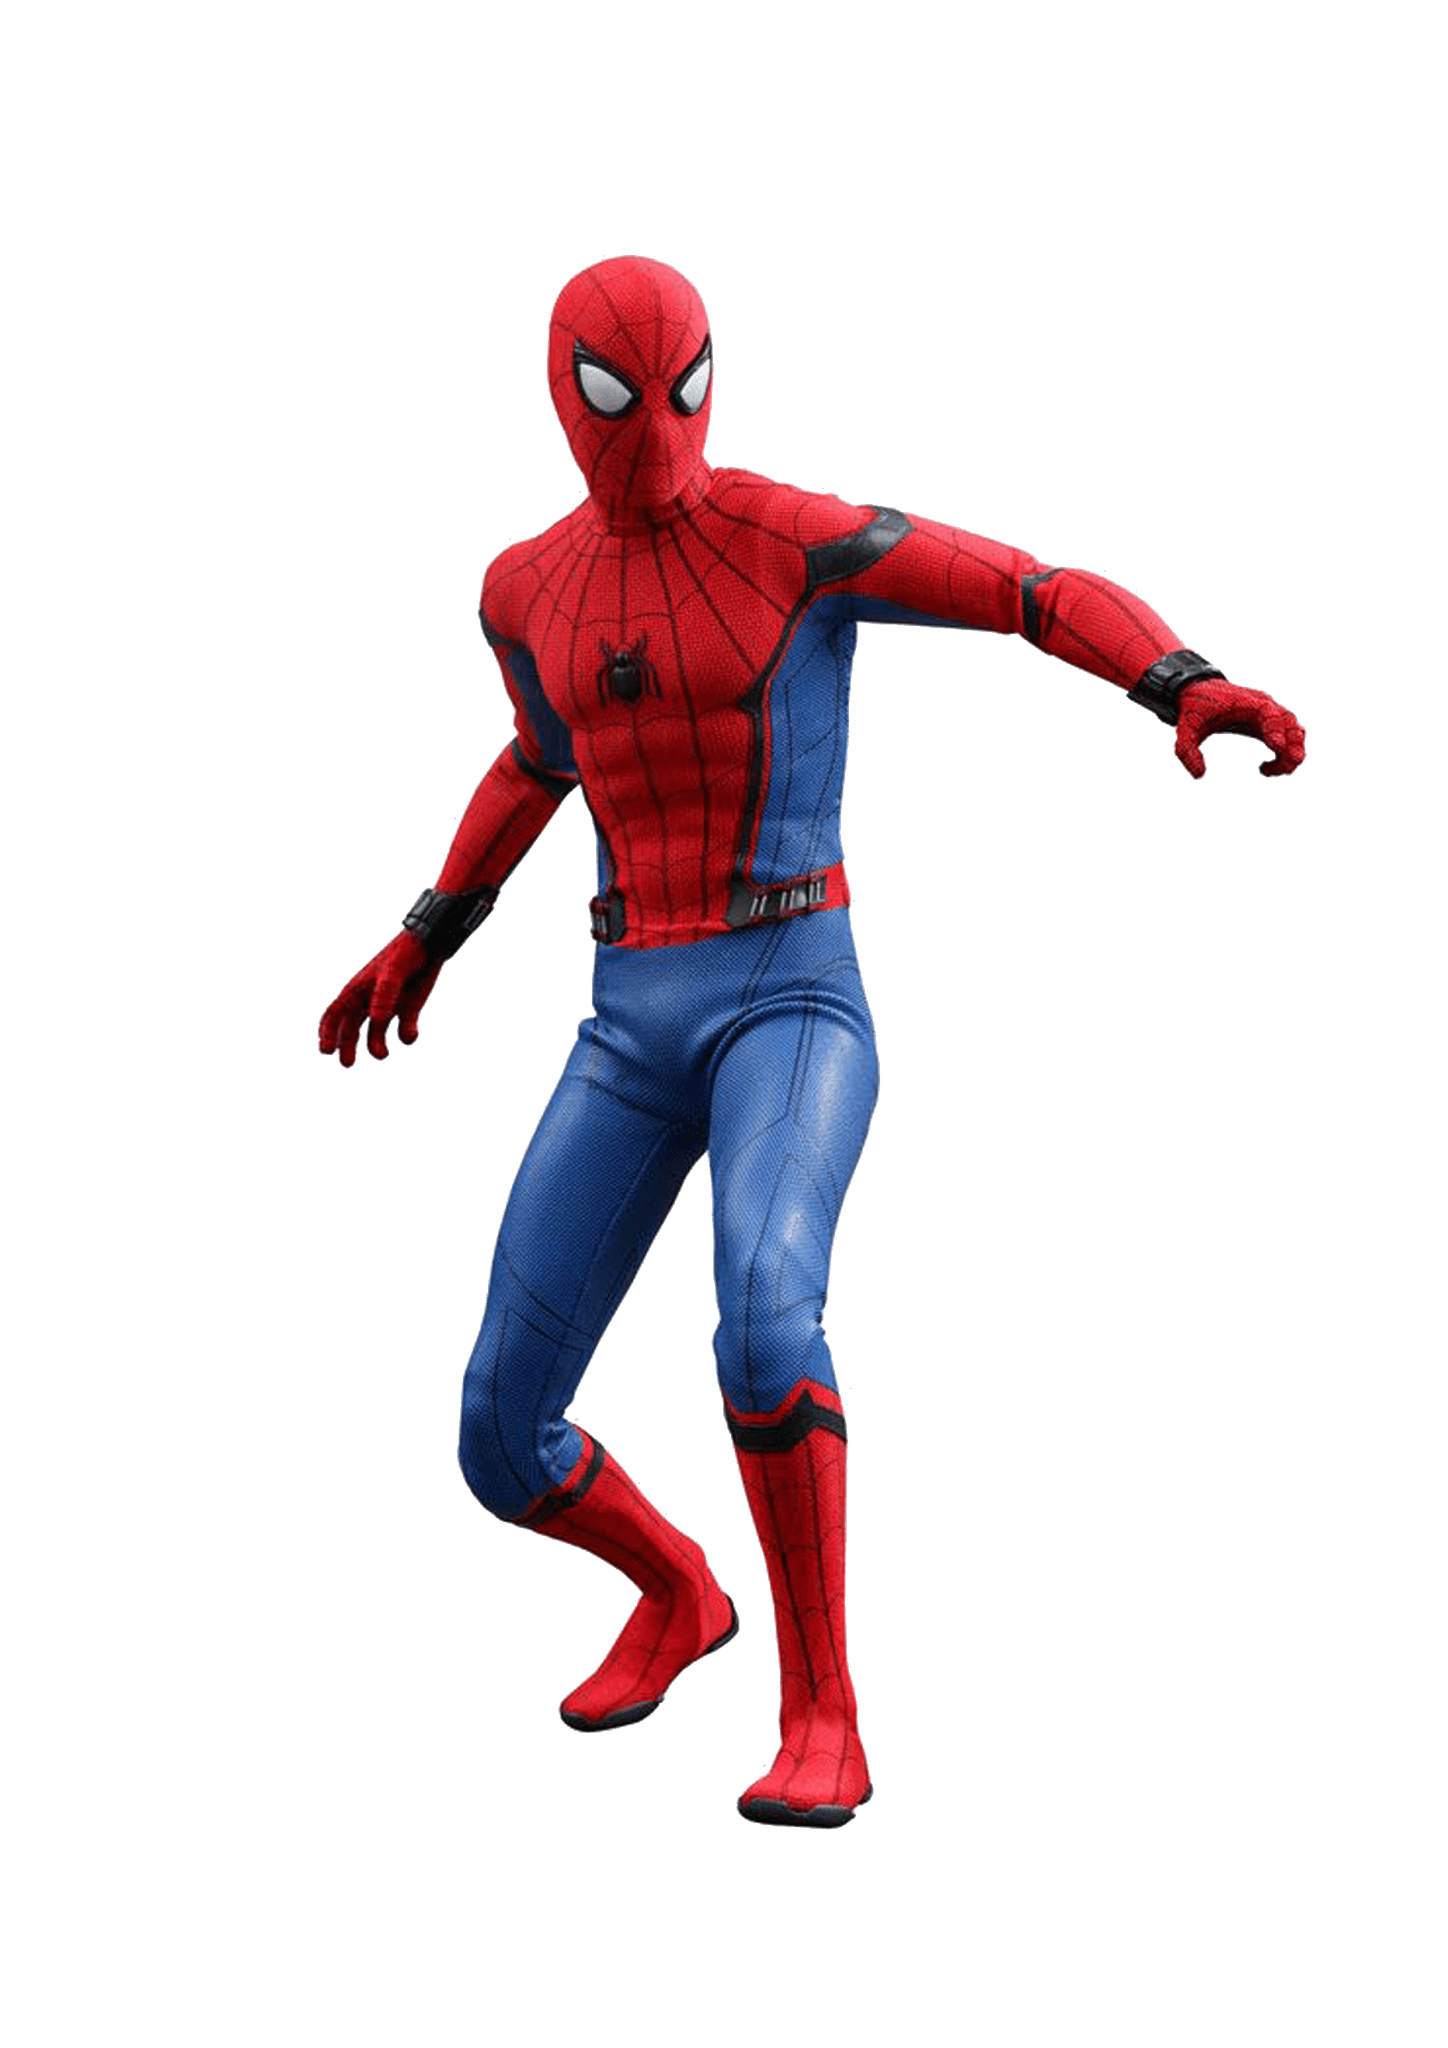 Spider-Man: Homecoming • Issue Number One Studios